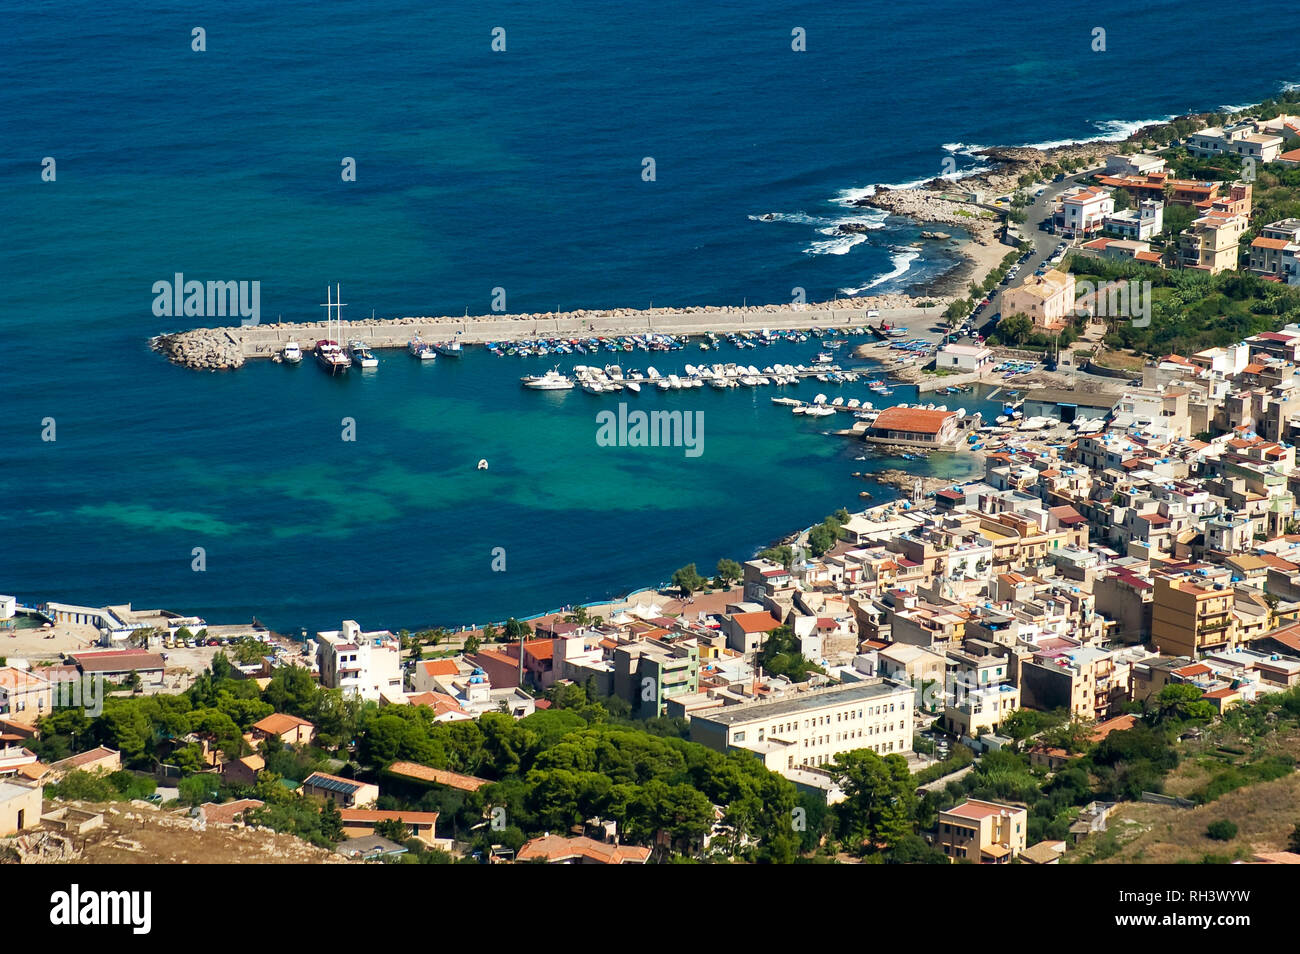 Aerial view of Sferracavallo harbor and town from the top of Pizzo Manolfo in Palermo, Sicily, Italy. Stock Photo